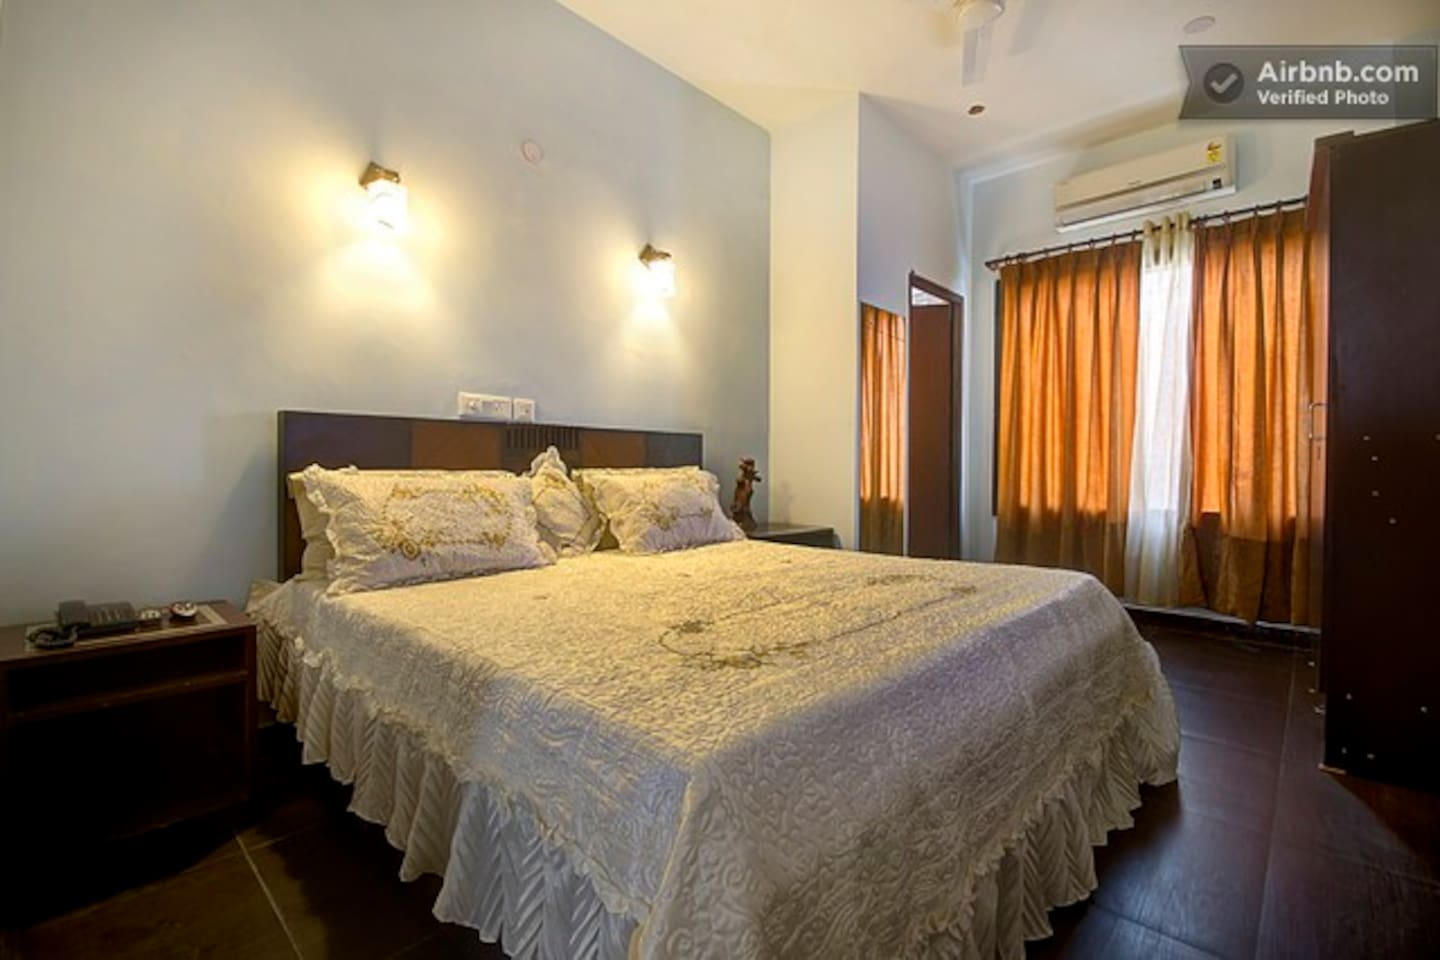 Superior room with Split AC and bed lights